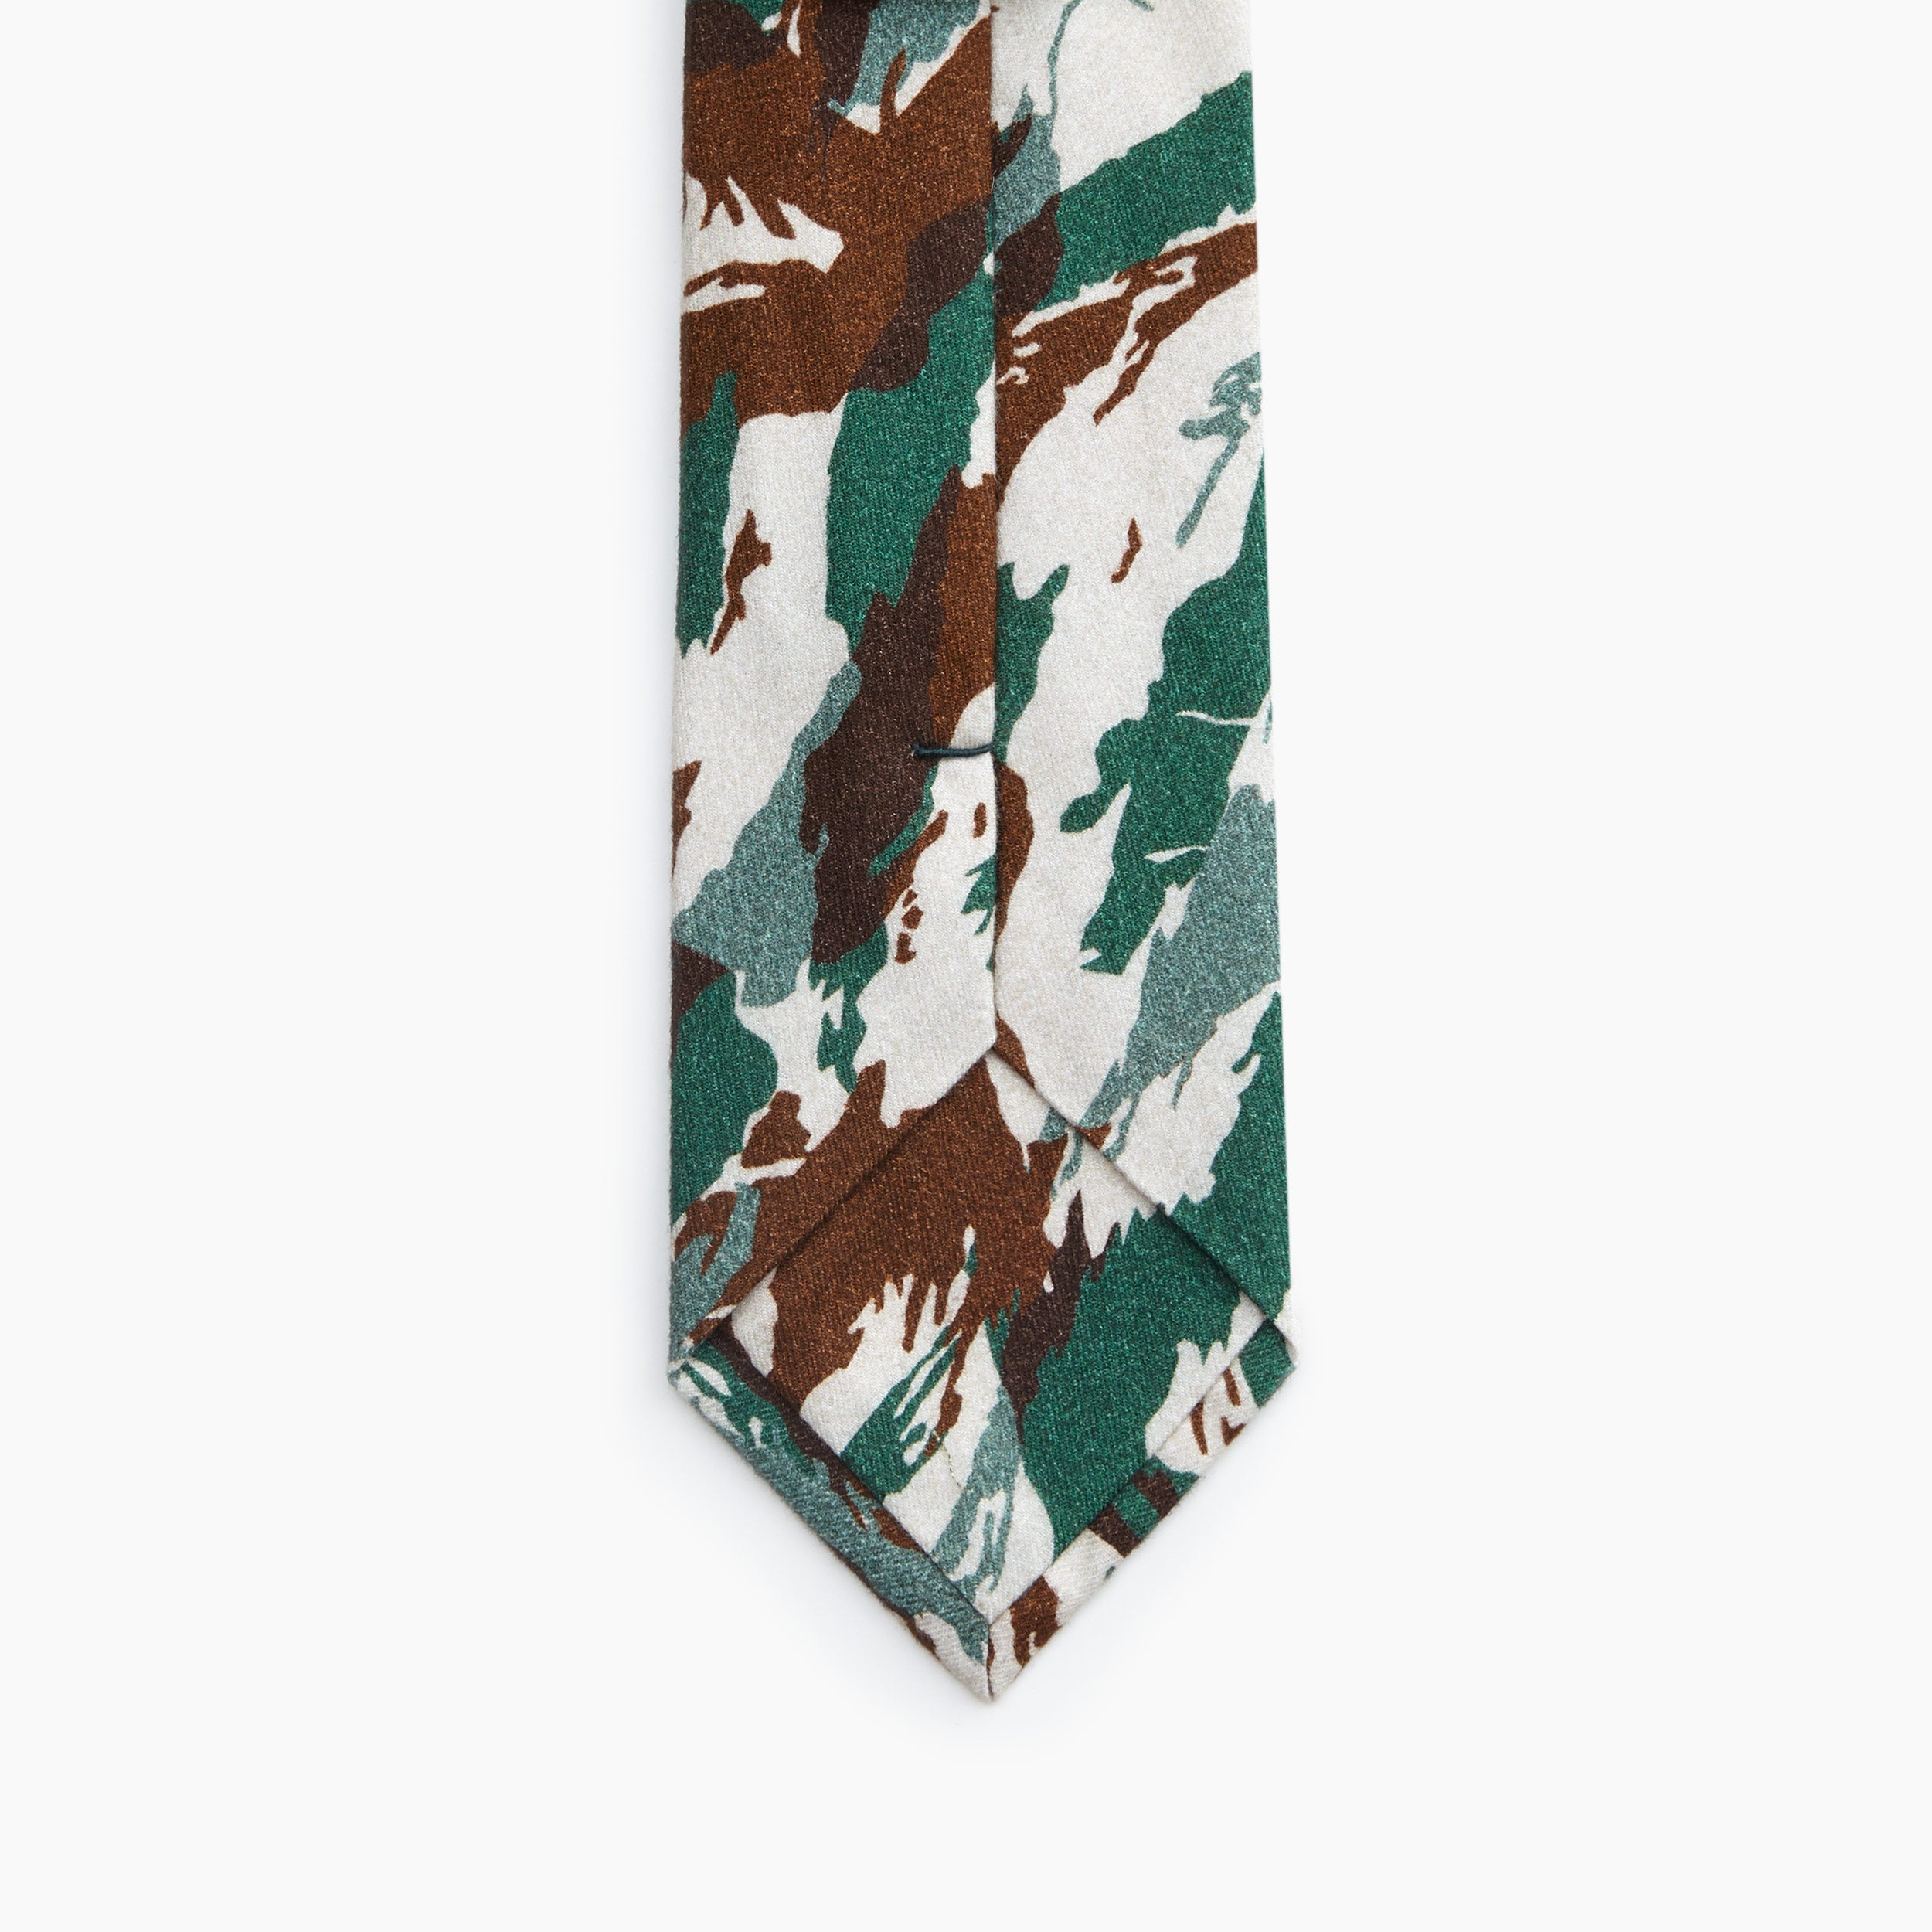 Self Tipped Tie | The Hungary Desert Camo Image